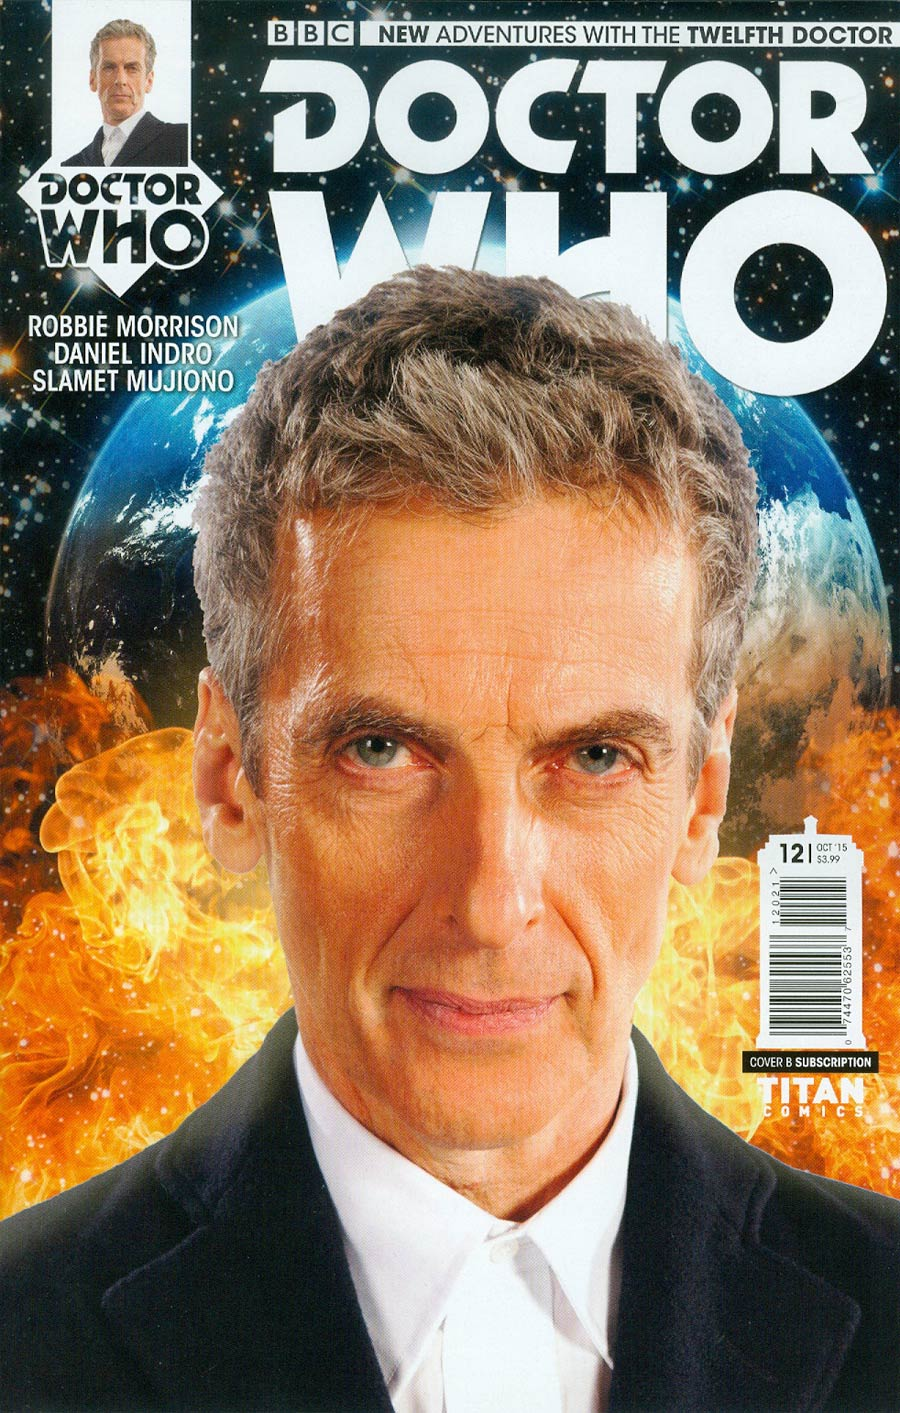 Doctor Who 12th Doctor #12 Cover B Variant Photo Subscription Cover